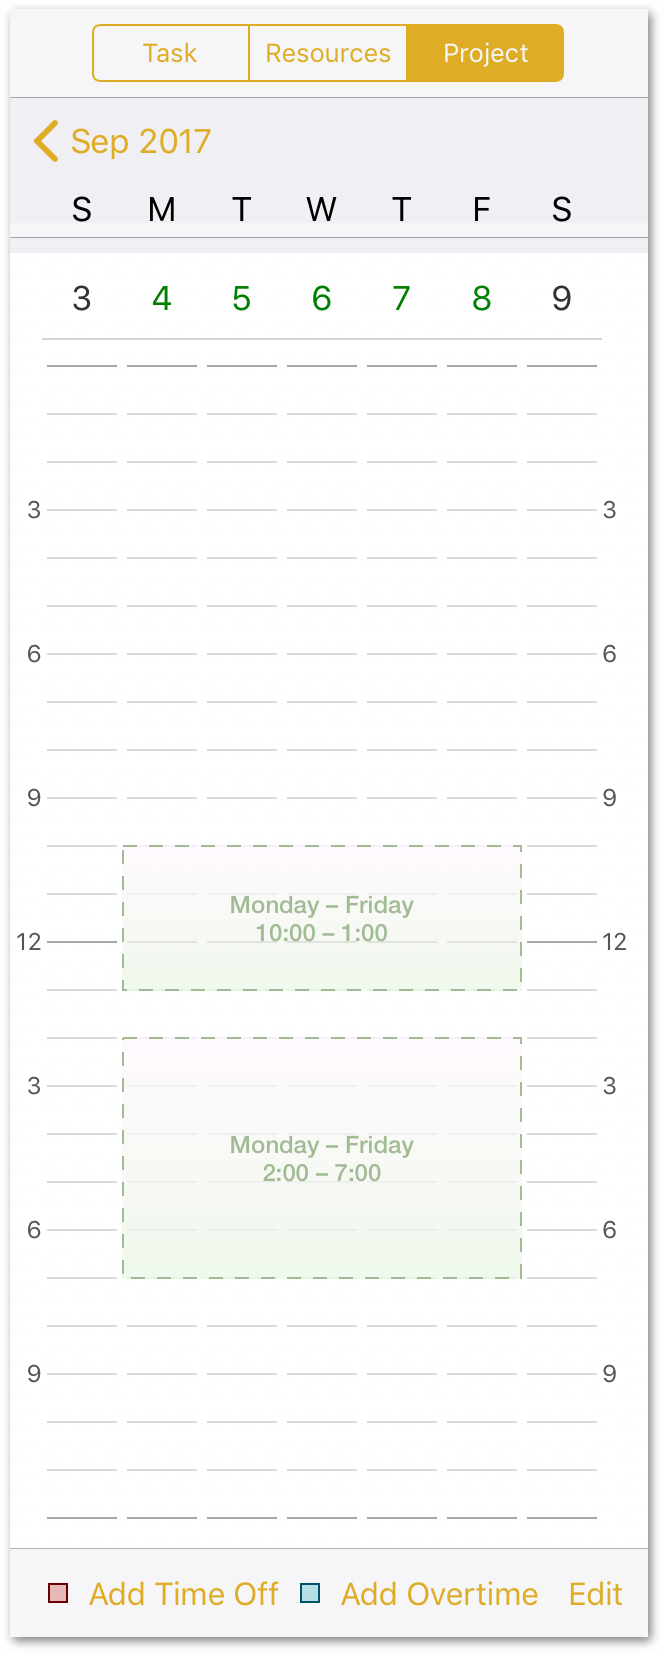 The Calendar shows the normal working hours as time blocks with a dashed border.